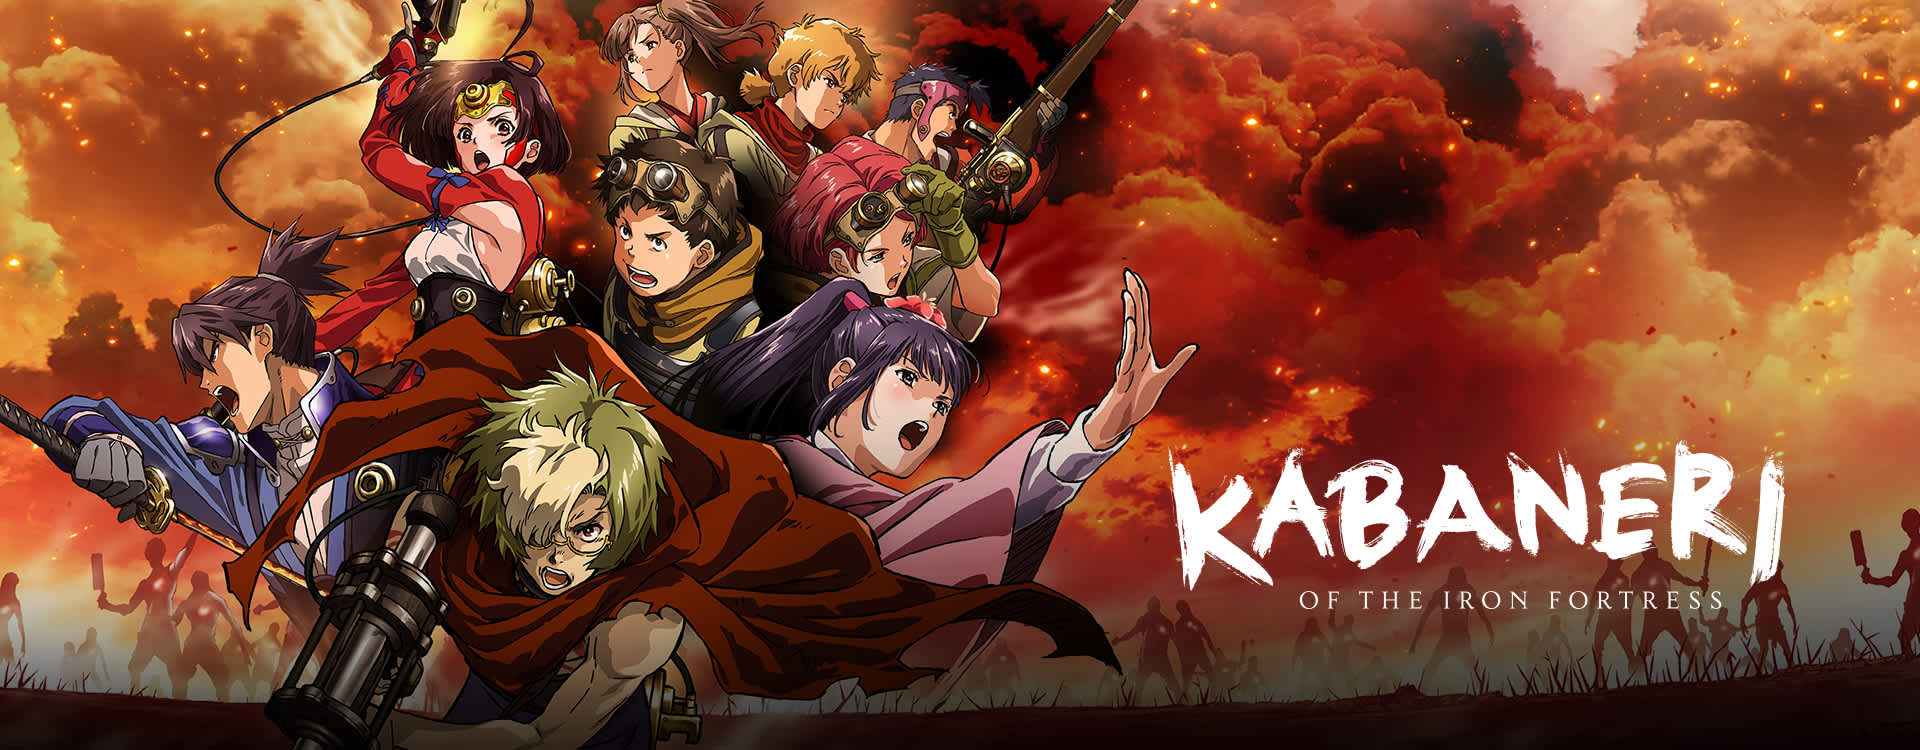 Image result for kabaneri of the iron fortress